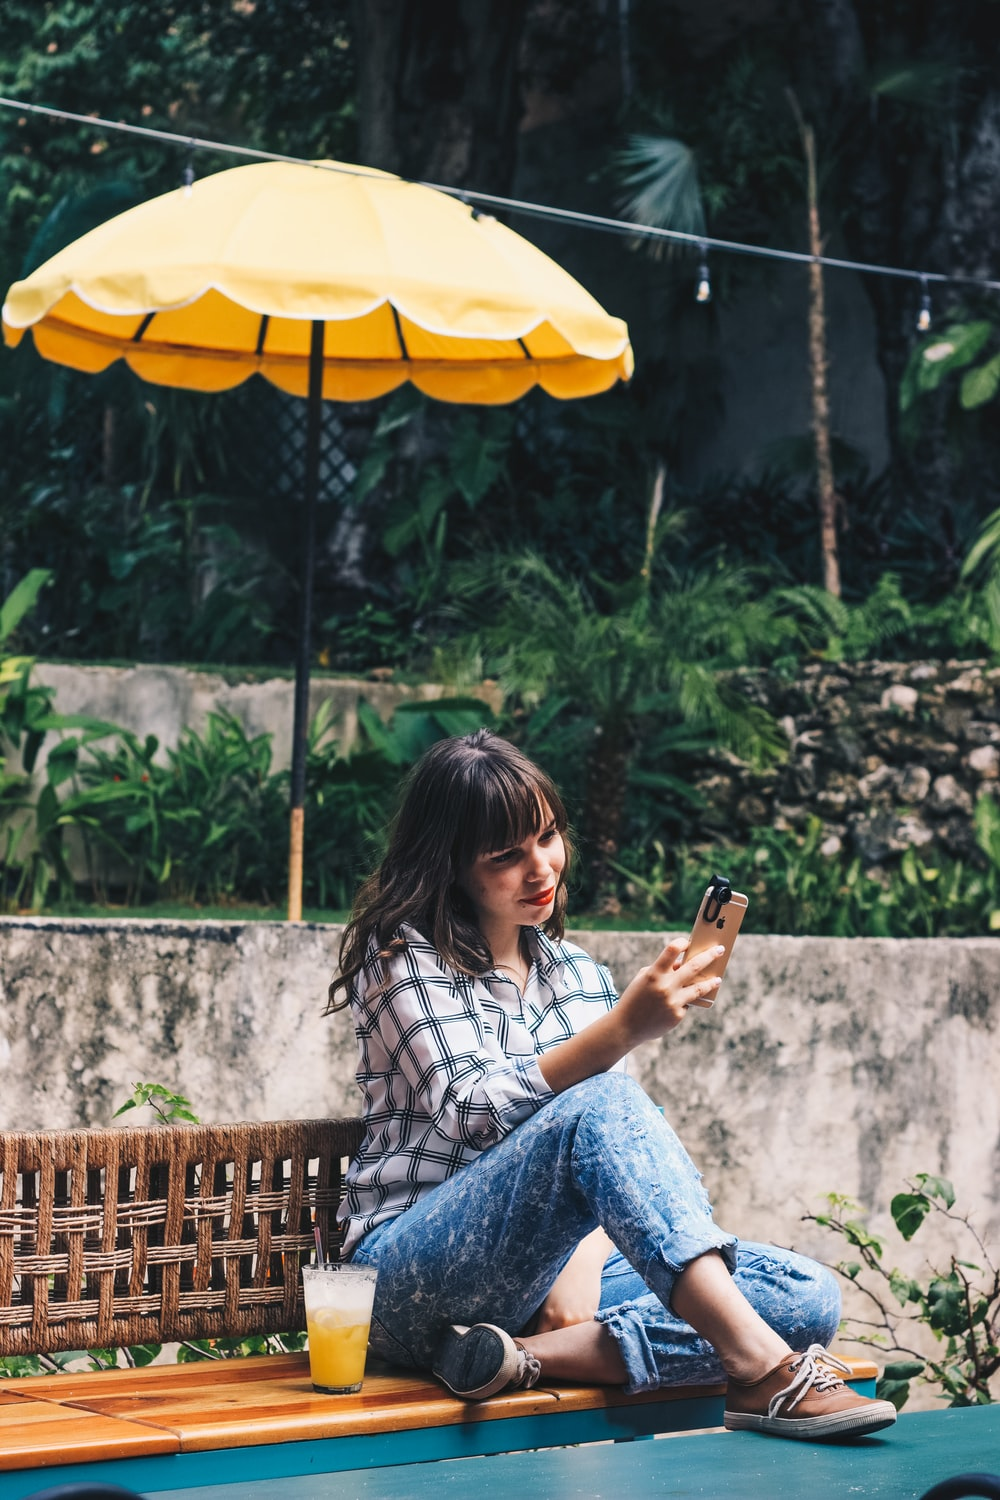 woman in blue denim jeans sitting on brown wooden bench holding smartphone